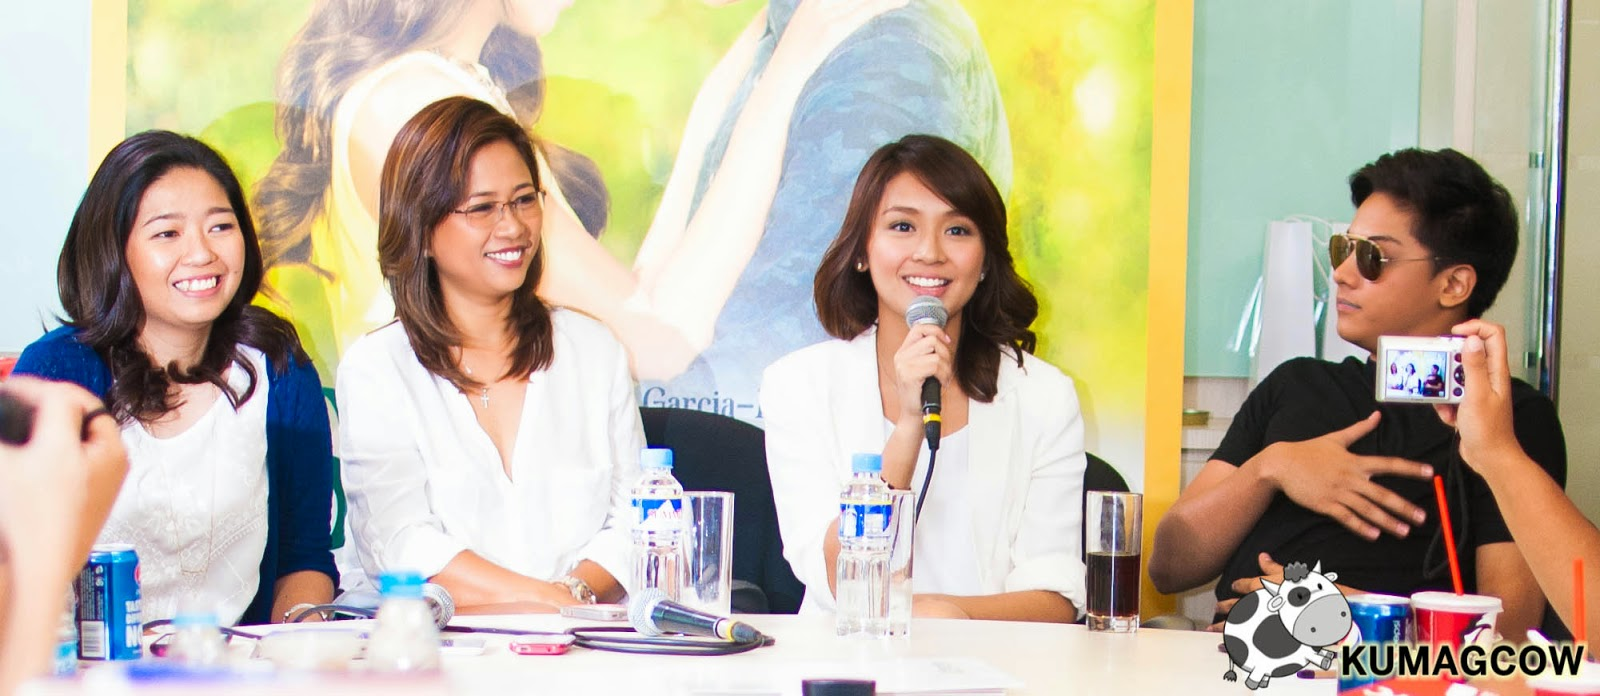 Shes dating the gangster blogcon